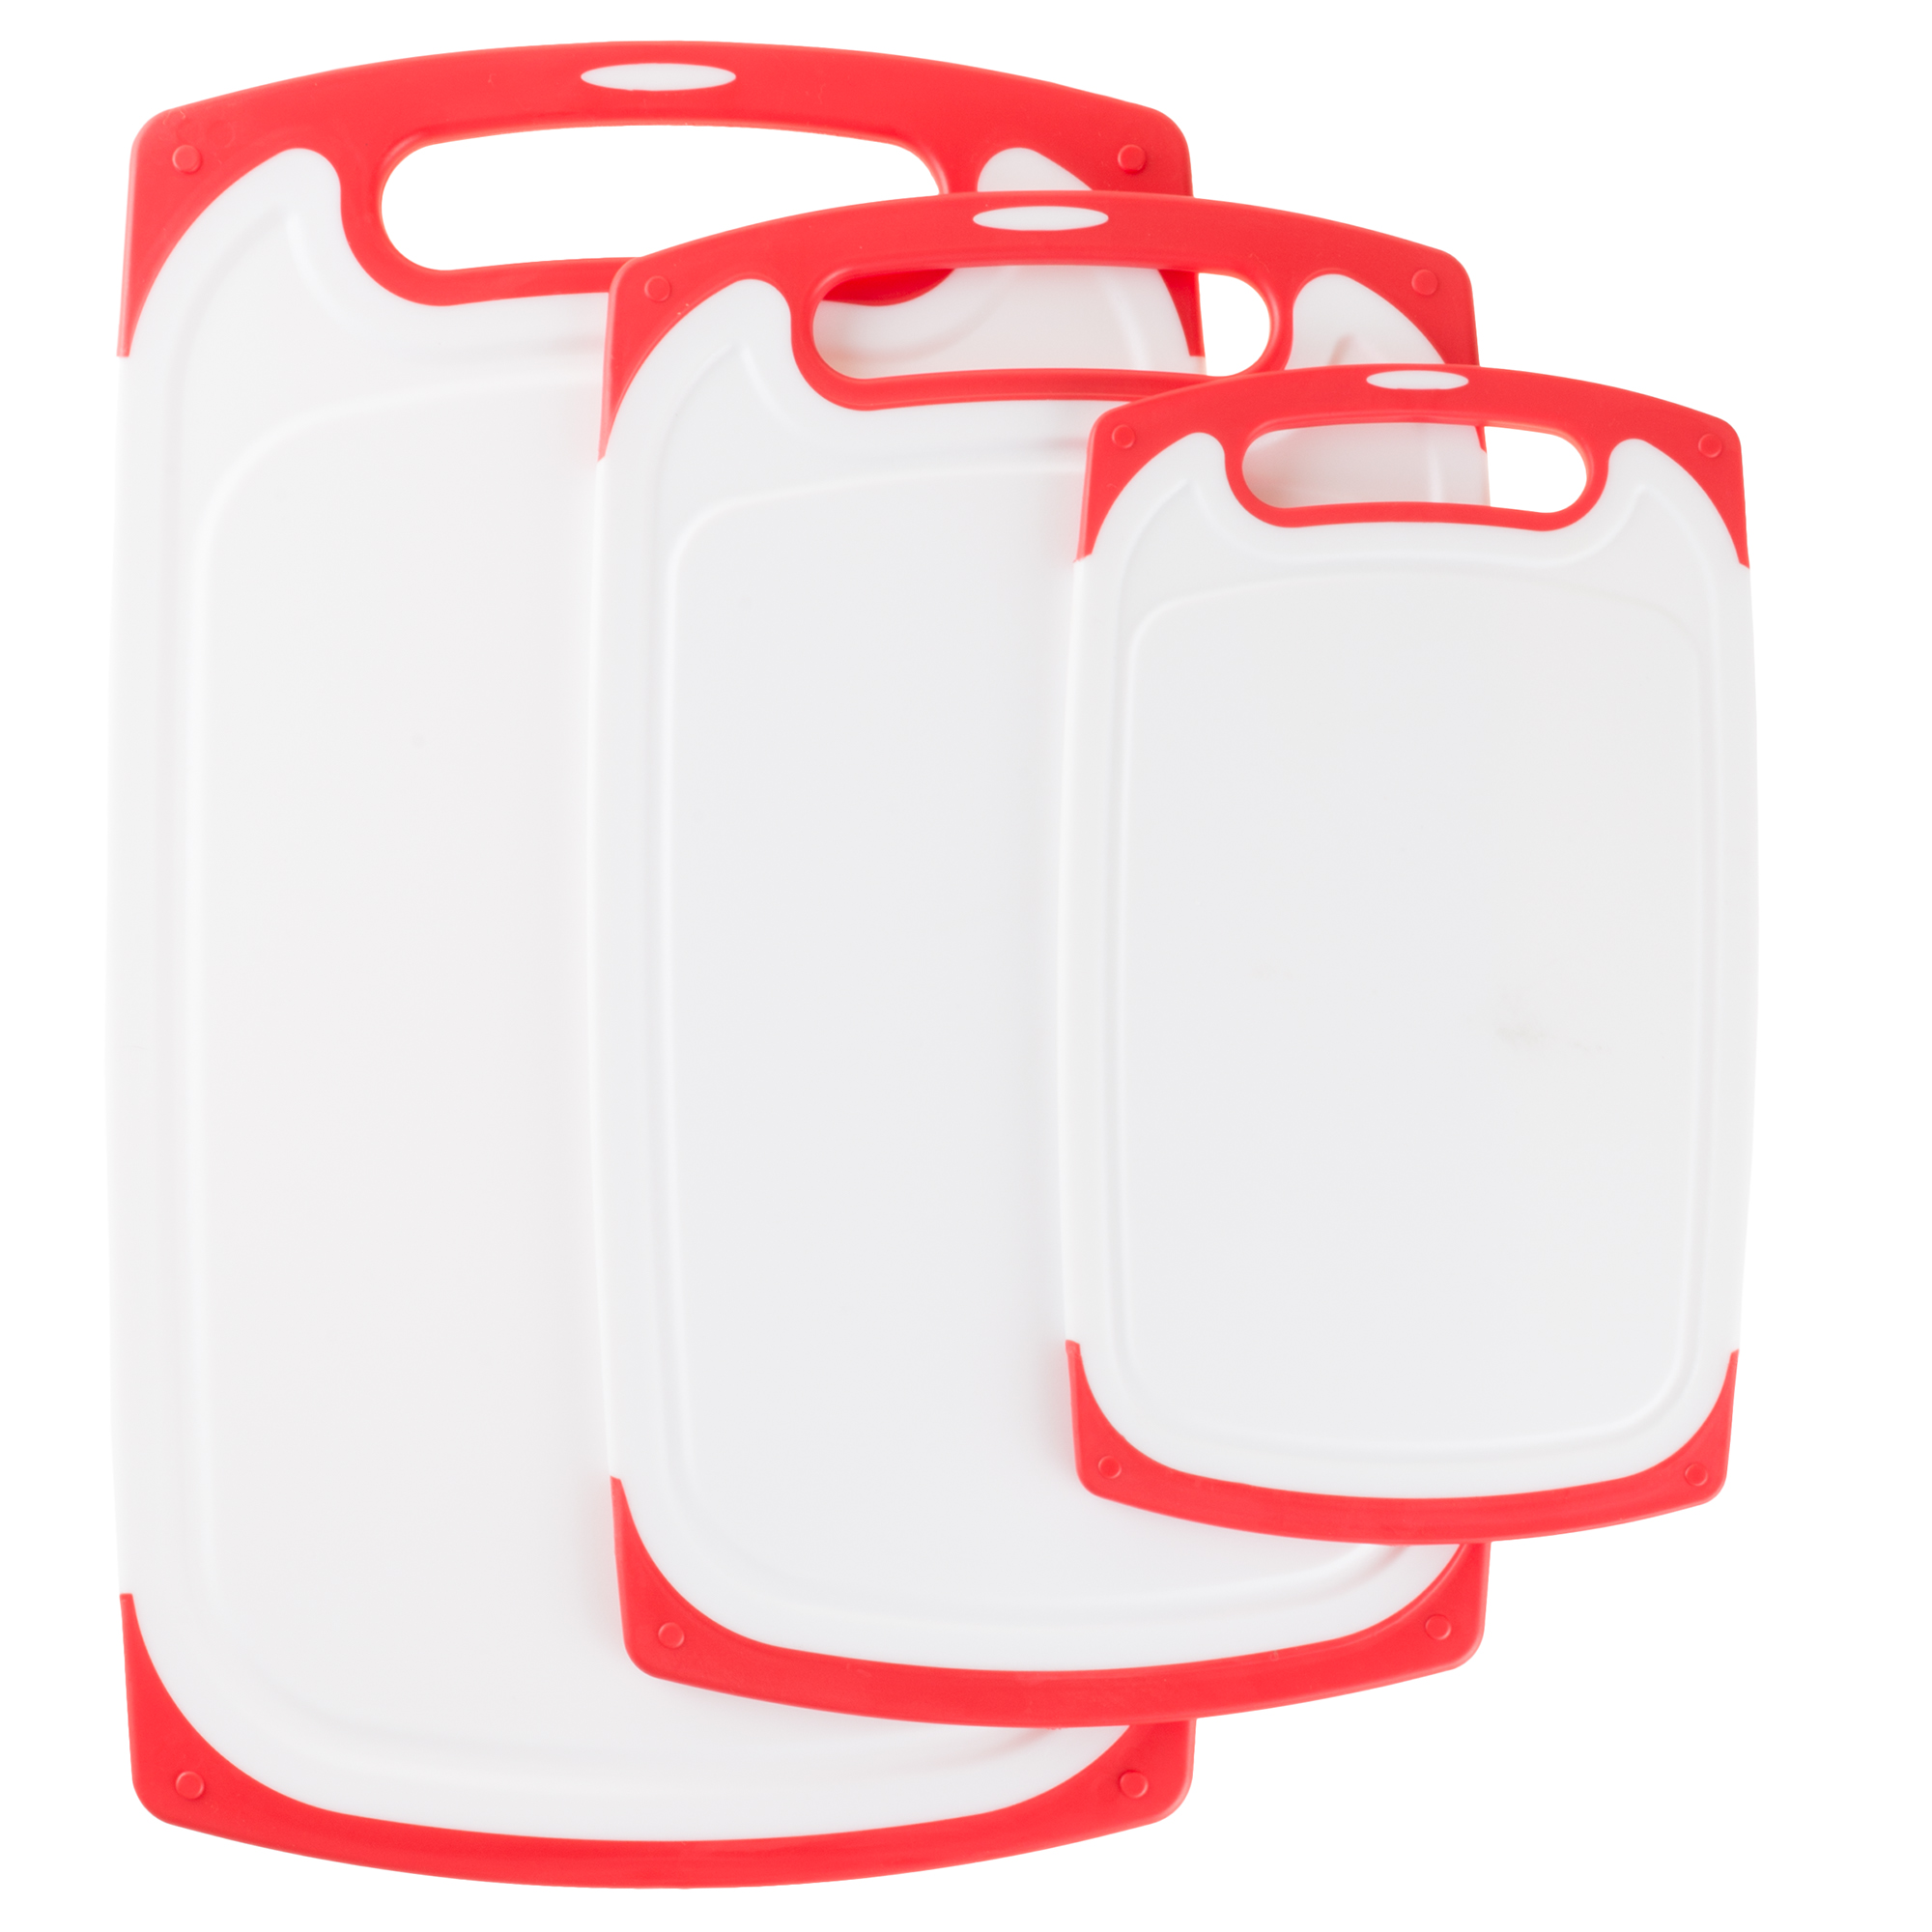 Cutting Board Set- 3 Piece Plastic Kitchen Chopping Boards for Cooking Food Prep with Juice Groove, Dishwasher Safe by Classic Cuisine (Red)